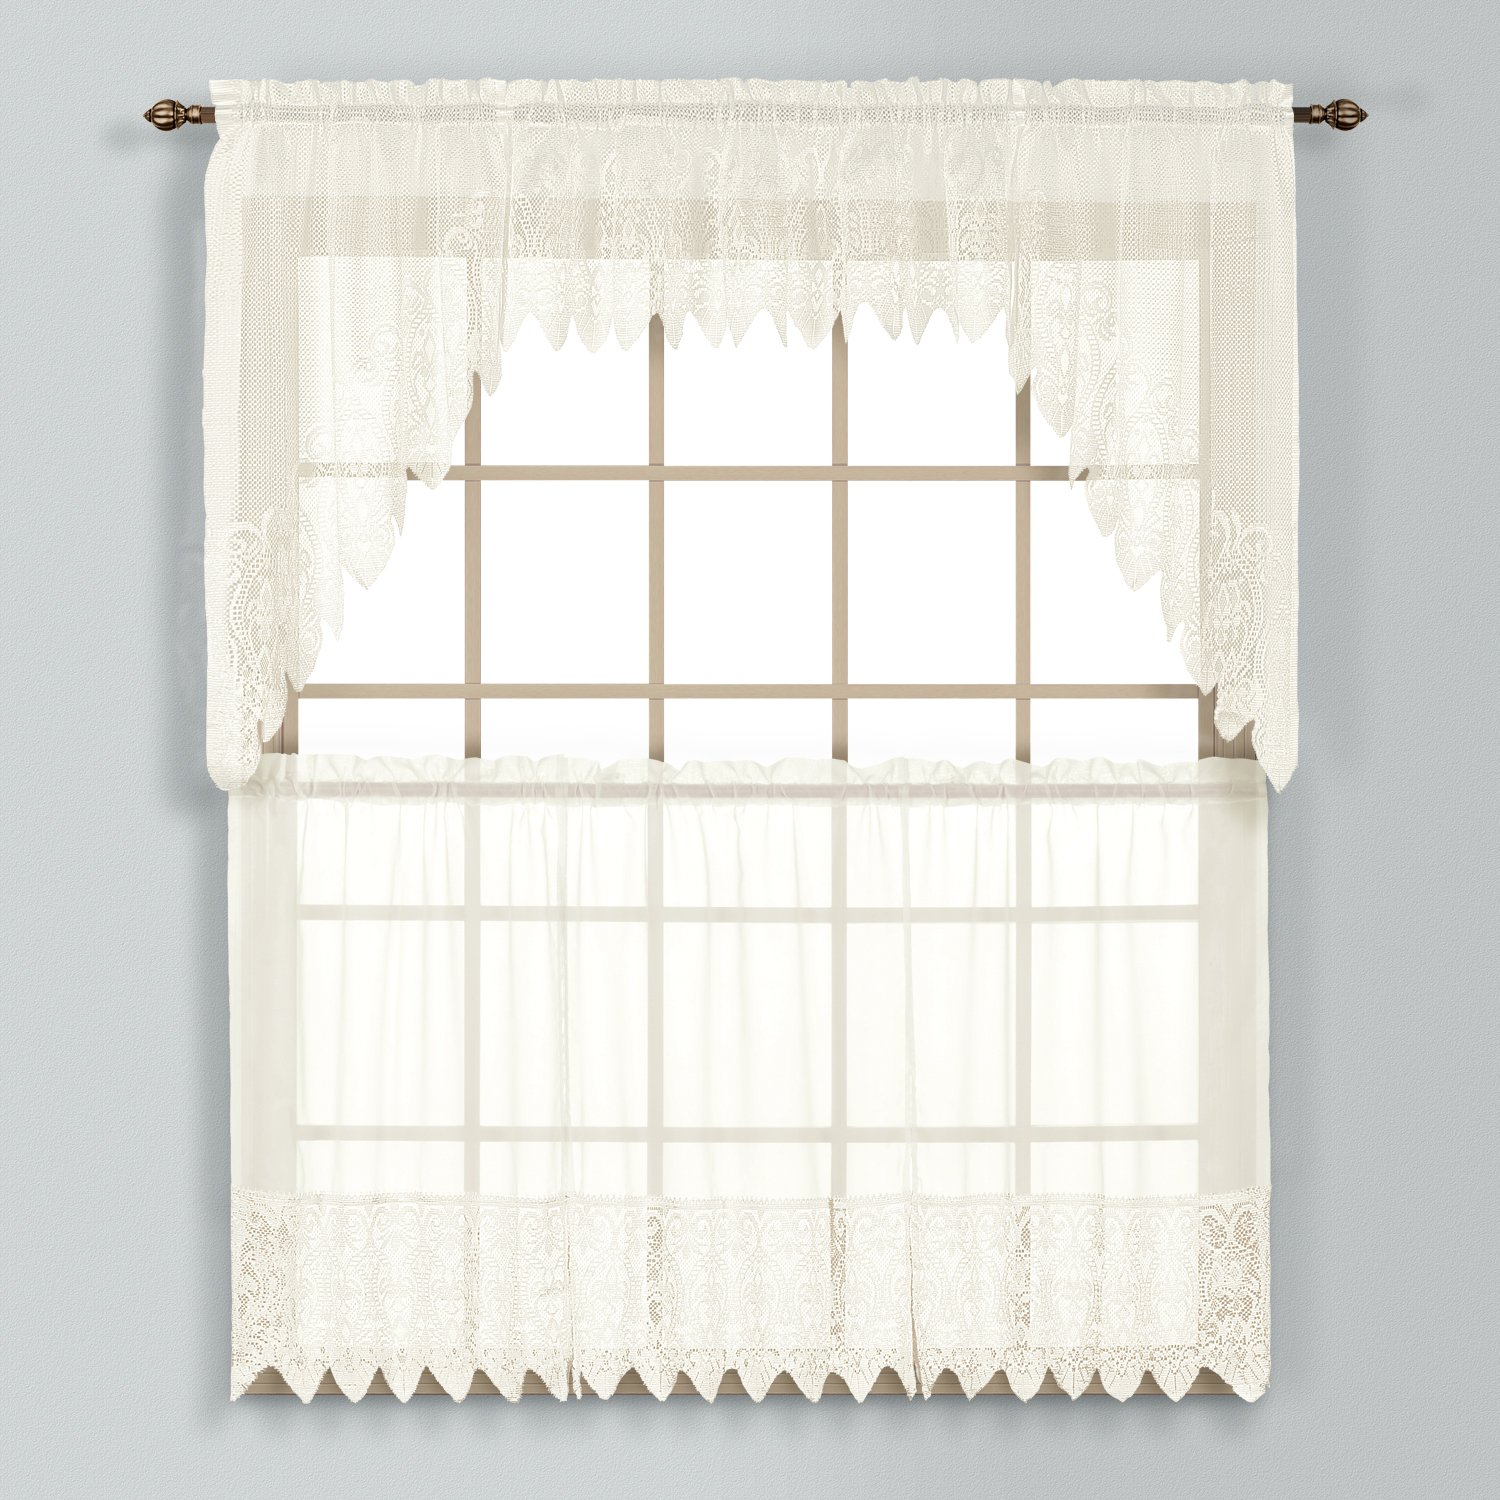 Amazon United Curtain Valerie Lace Sheer Kitchen Tiers 52 by